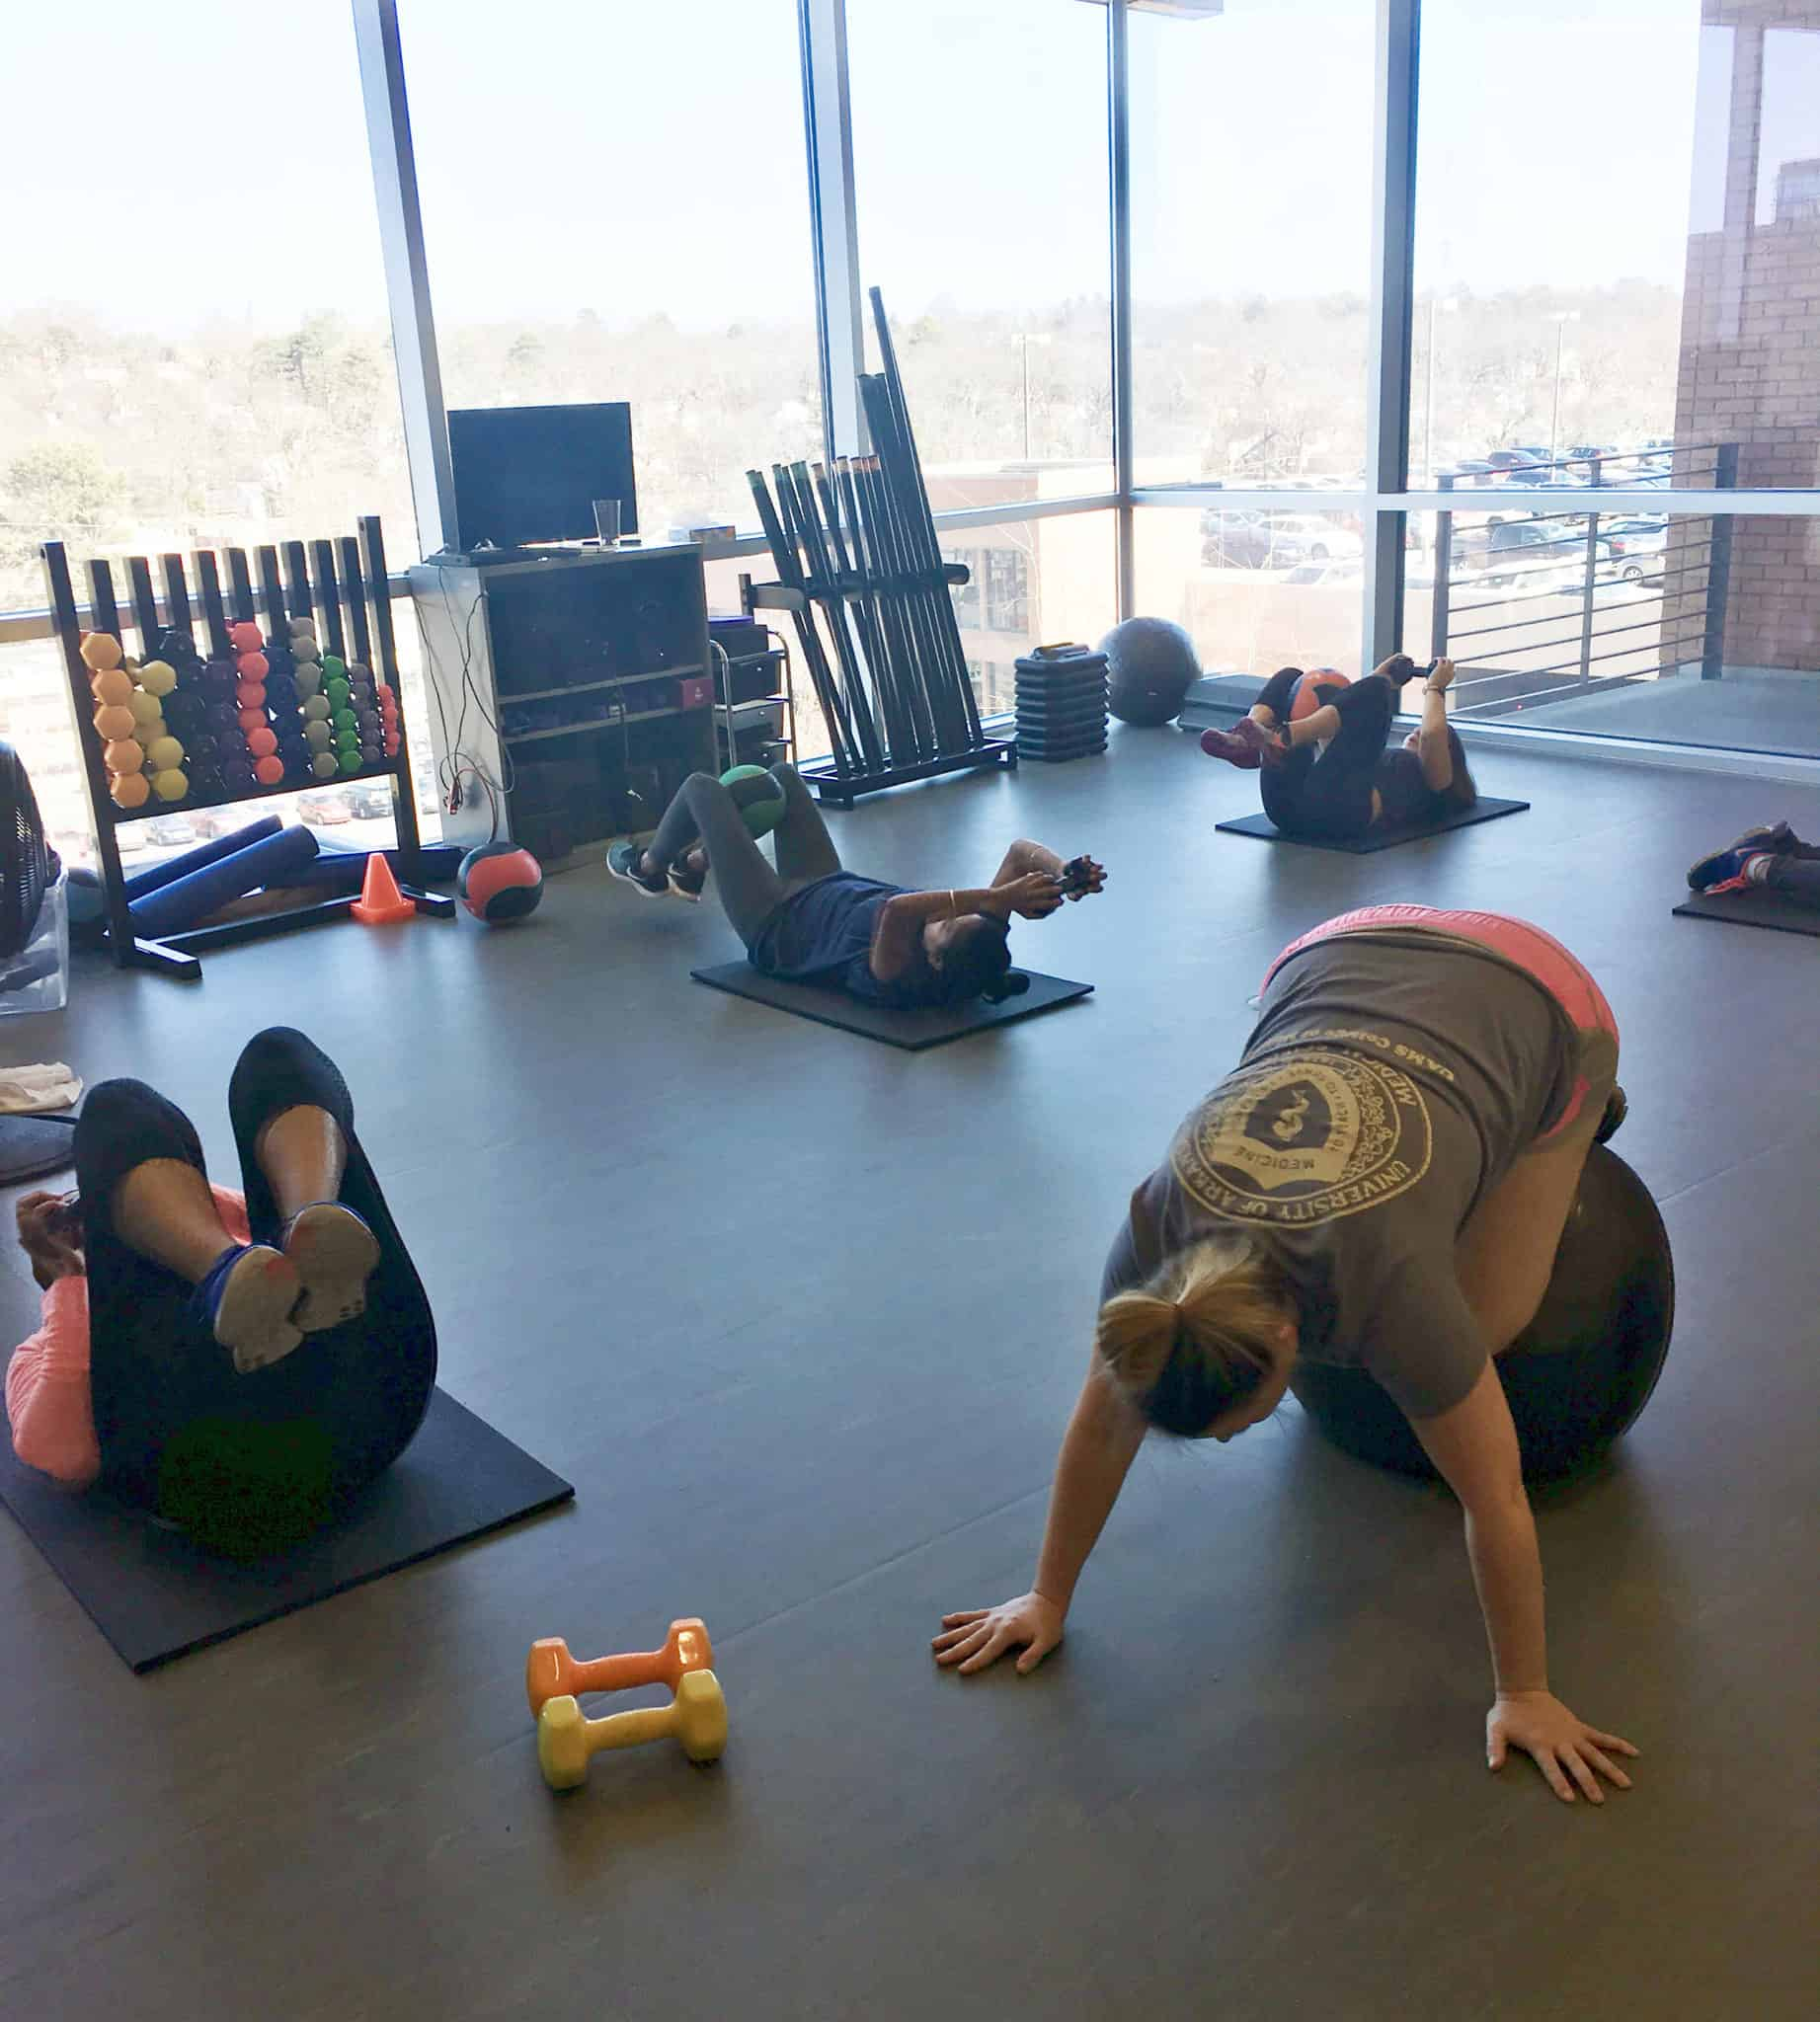 Team UAMS members work out in the Fitness Center. The 12x12 Challenge encourages participants to work out at least 12 times a month for an entire year.